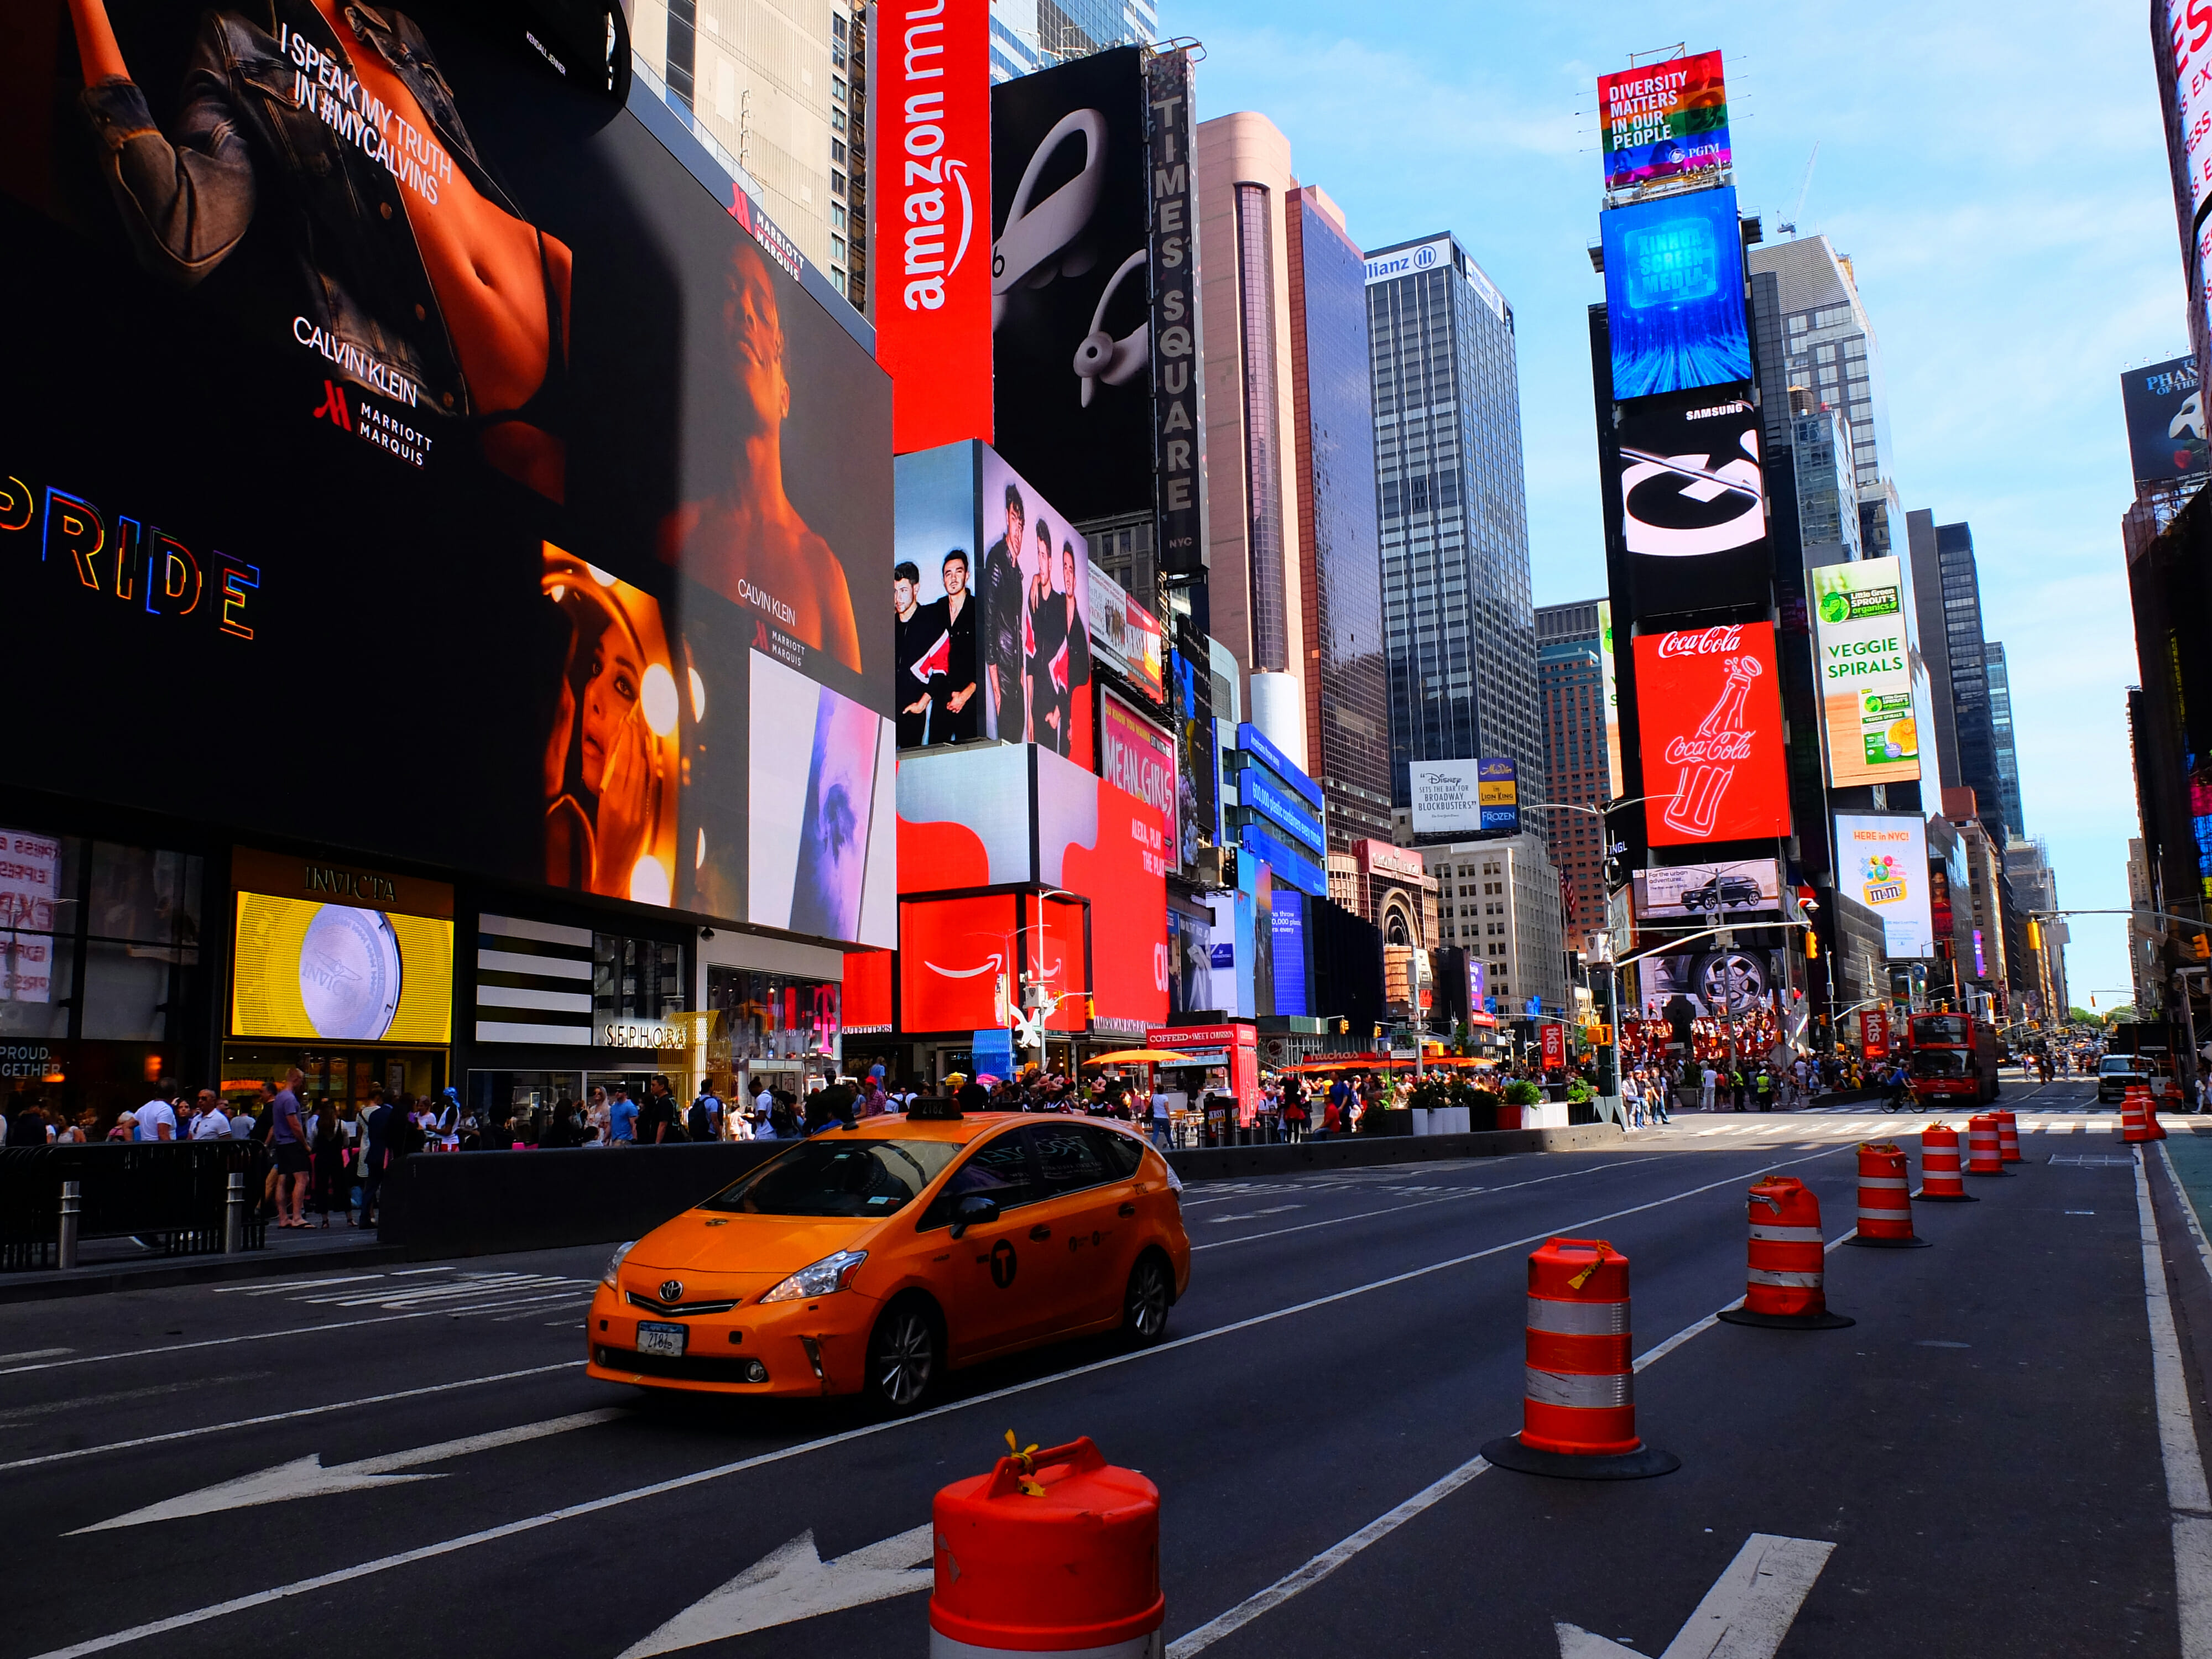 Times Square in New York City – High Quality Wallpaper